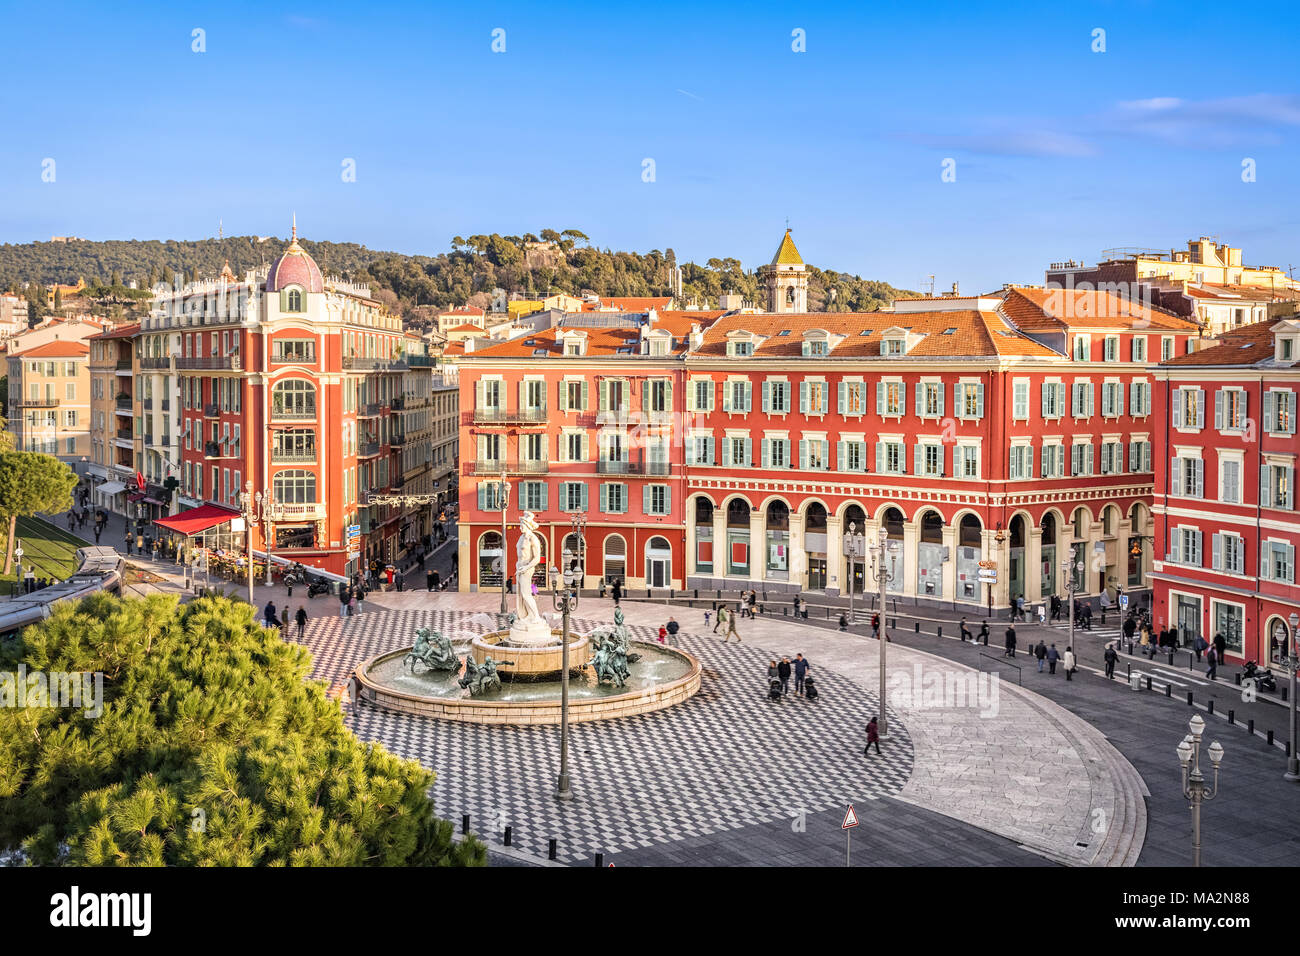 Aerial view of Place Massena square with red buildings  and fountain in Nice, France - Stock Image